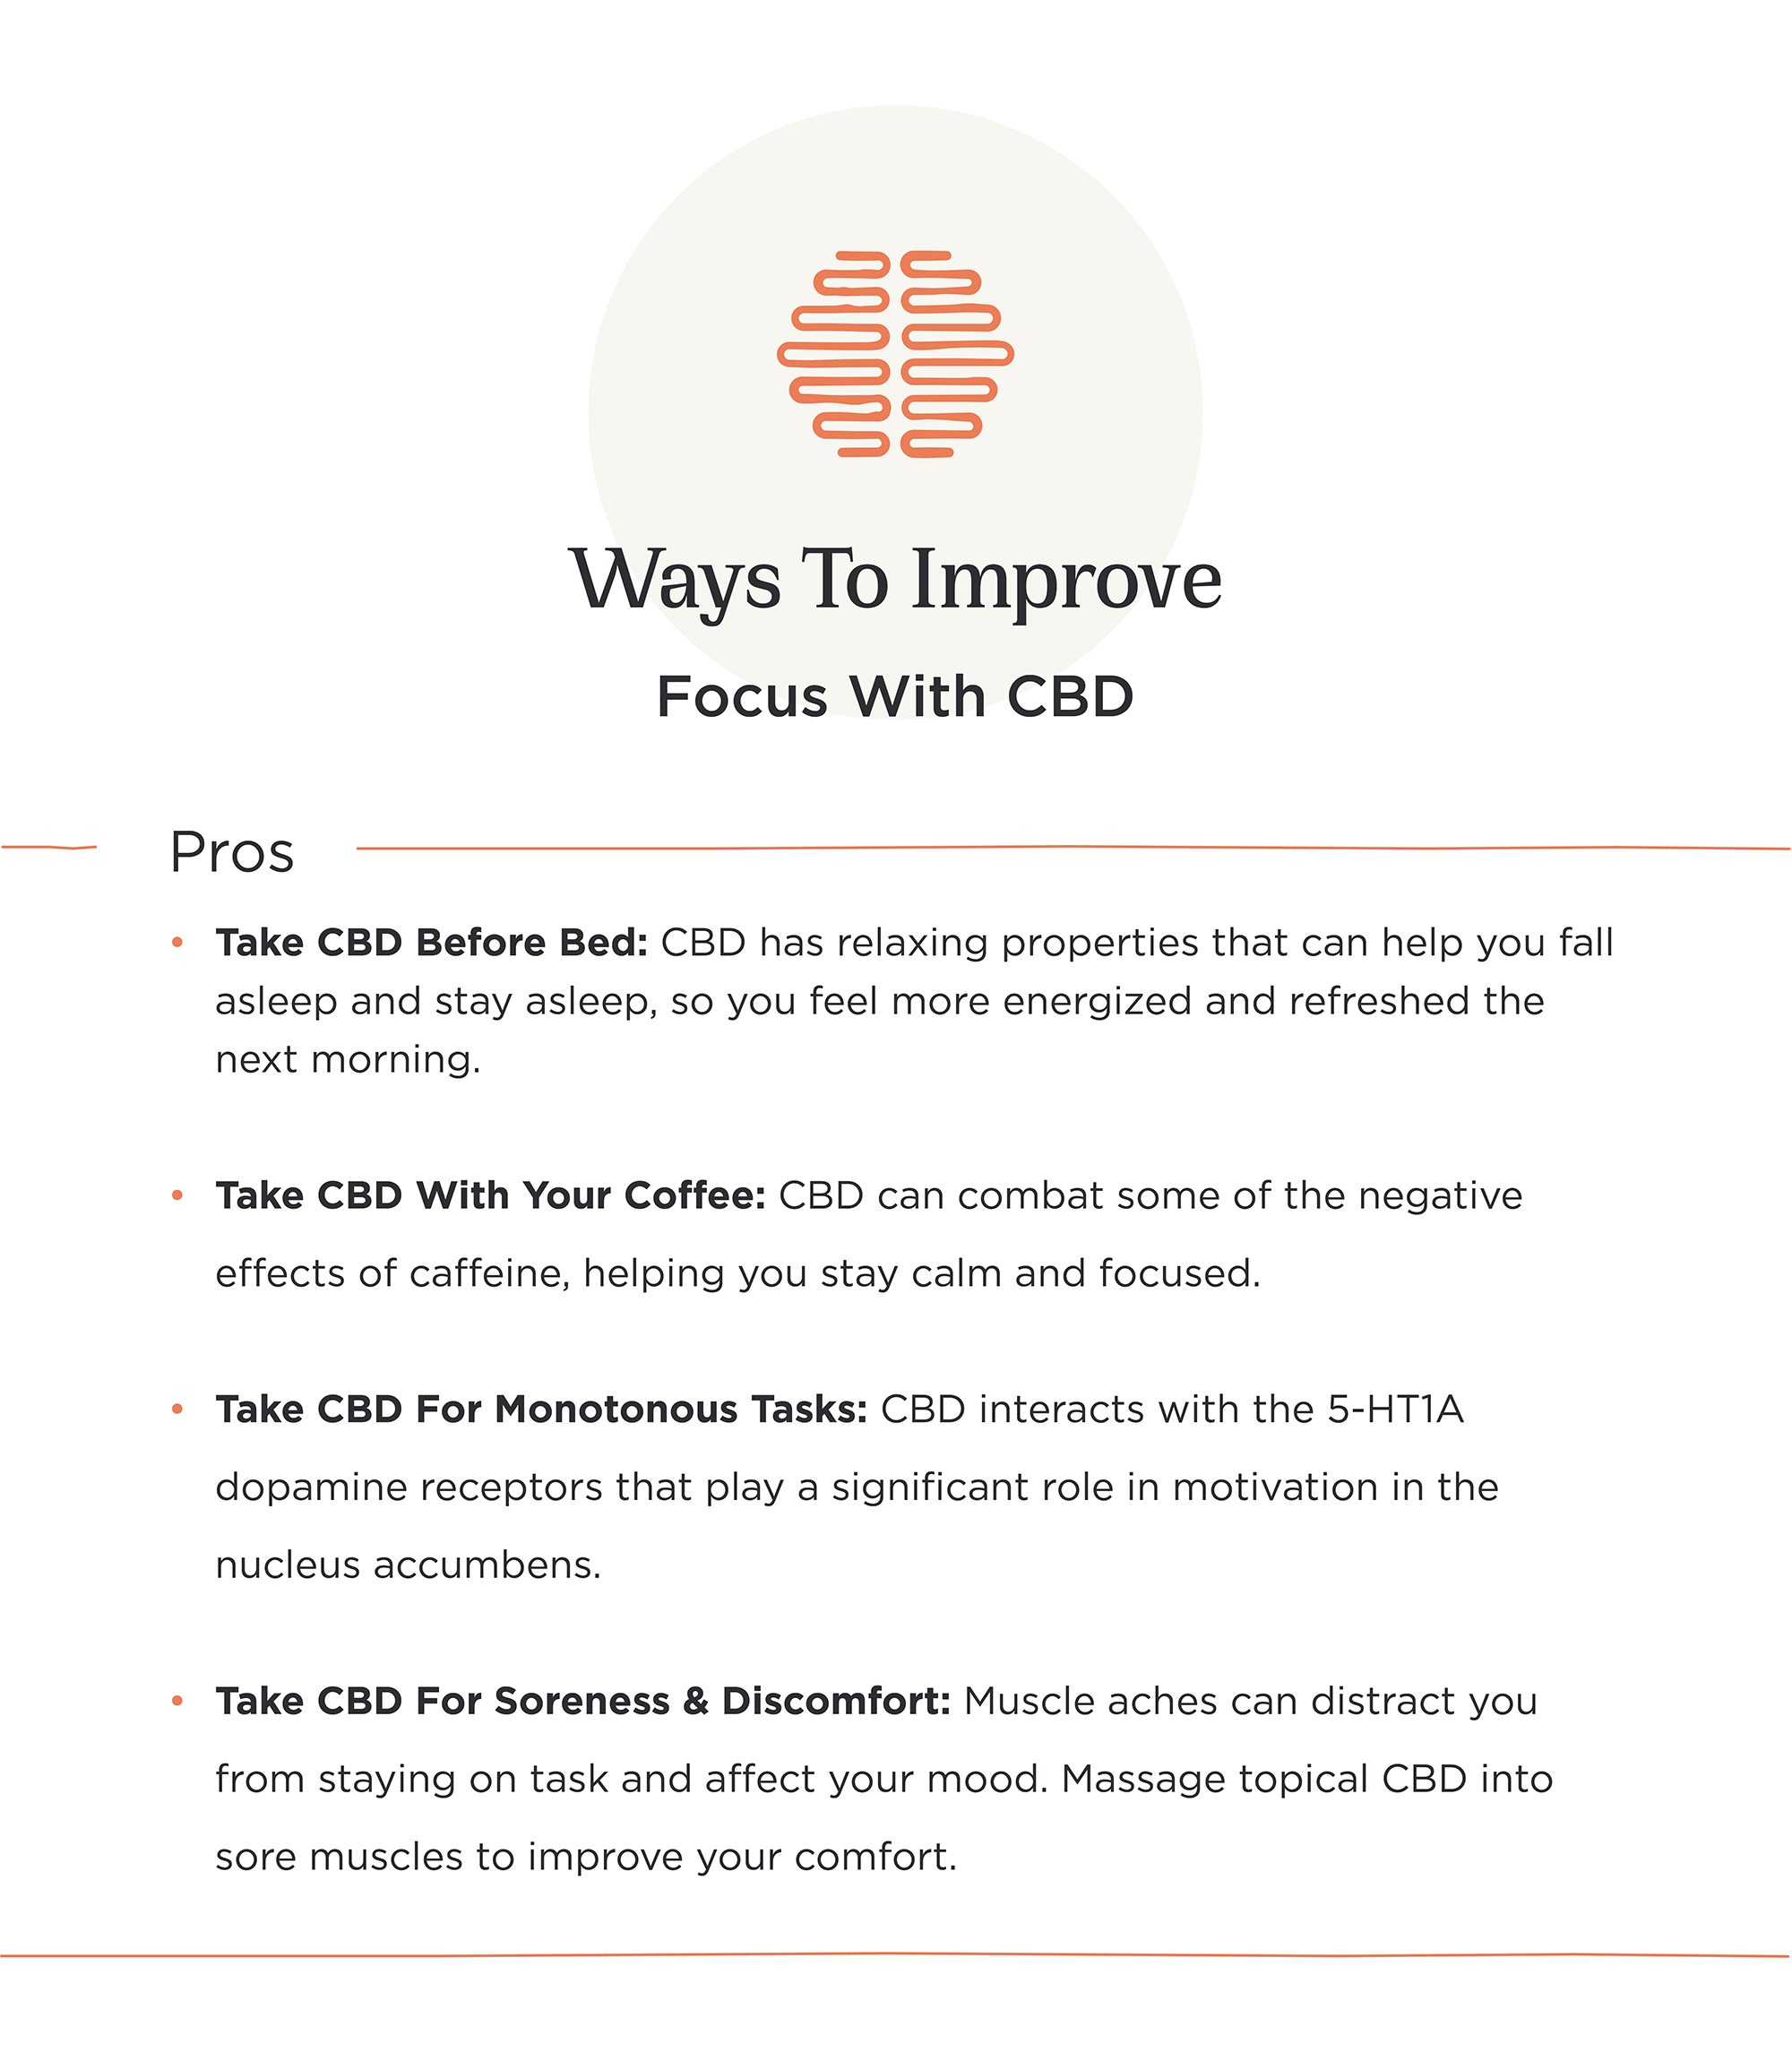 improving focus with cbd infographic